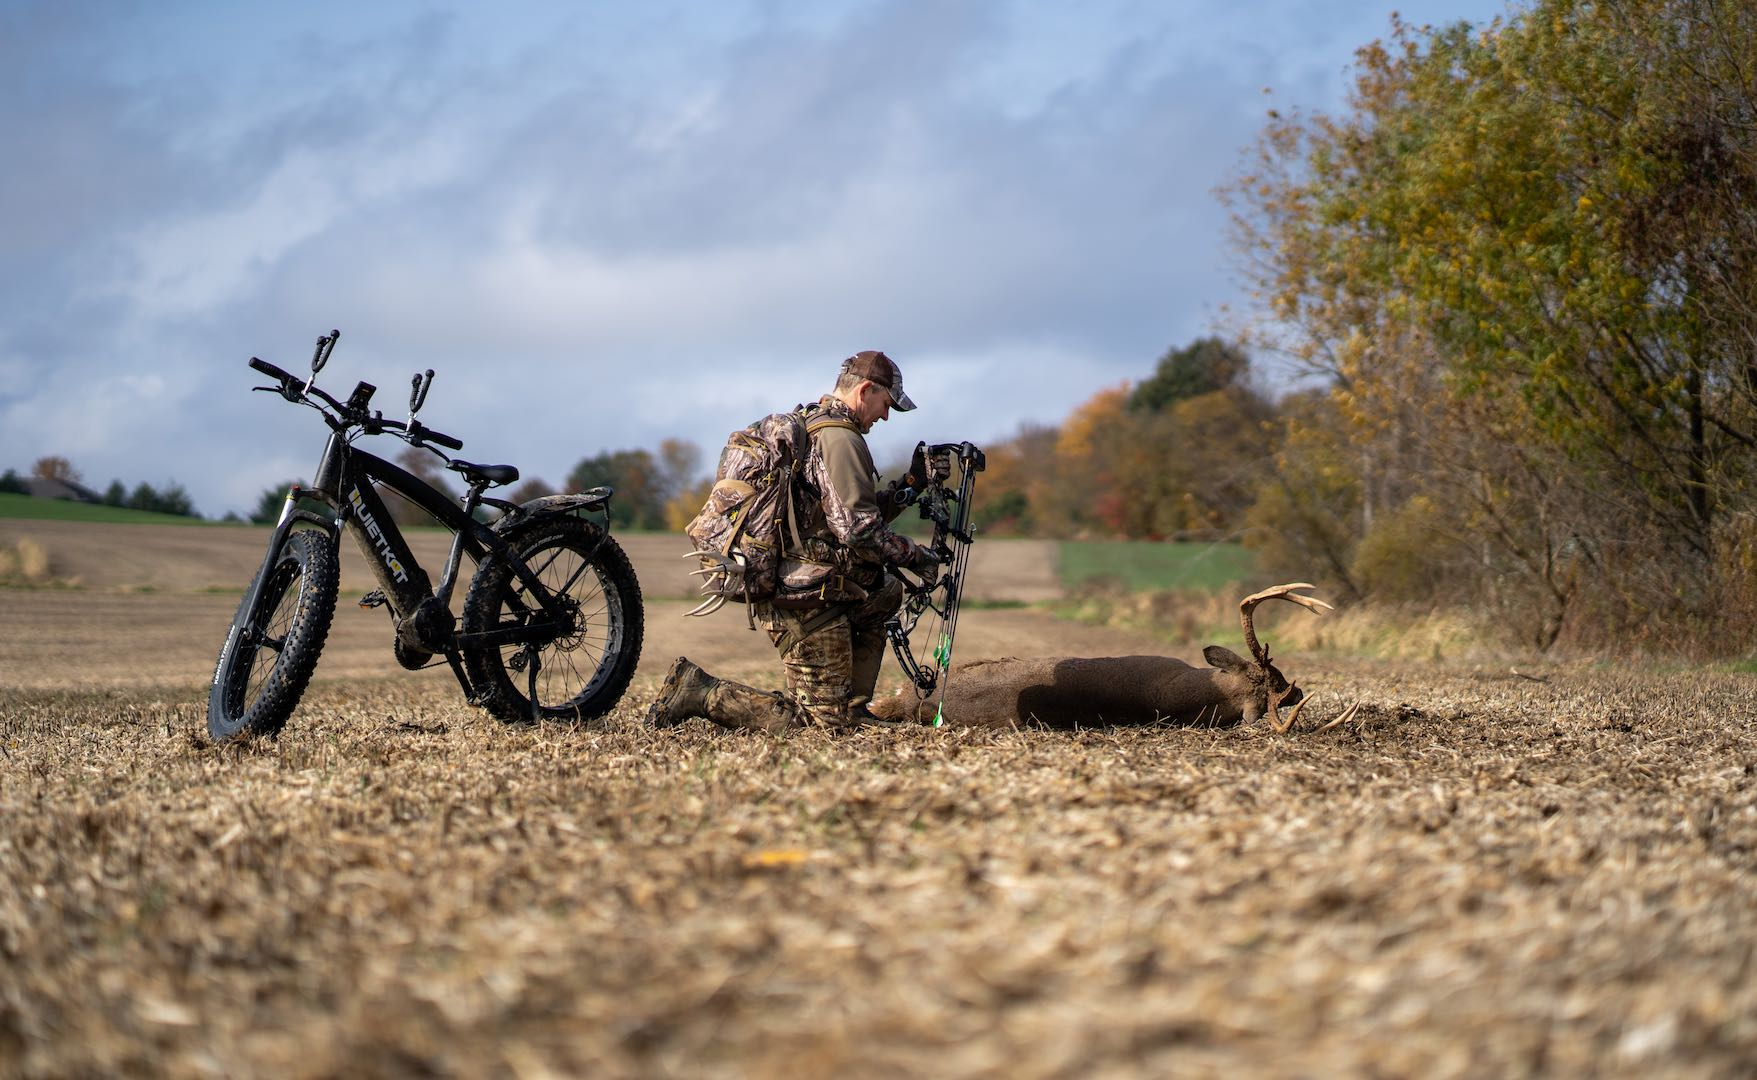 fat tire electric bikes are quiet and don't scare game away.